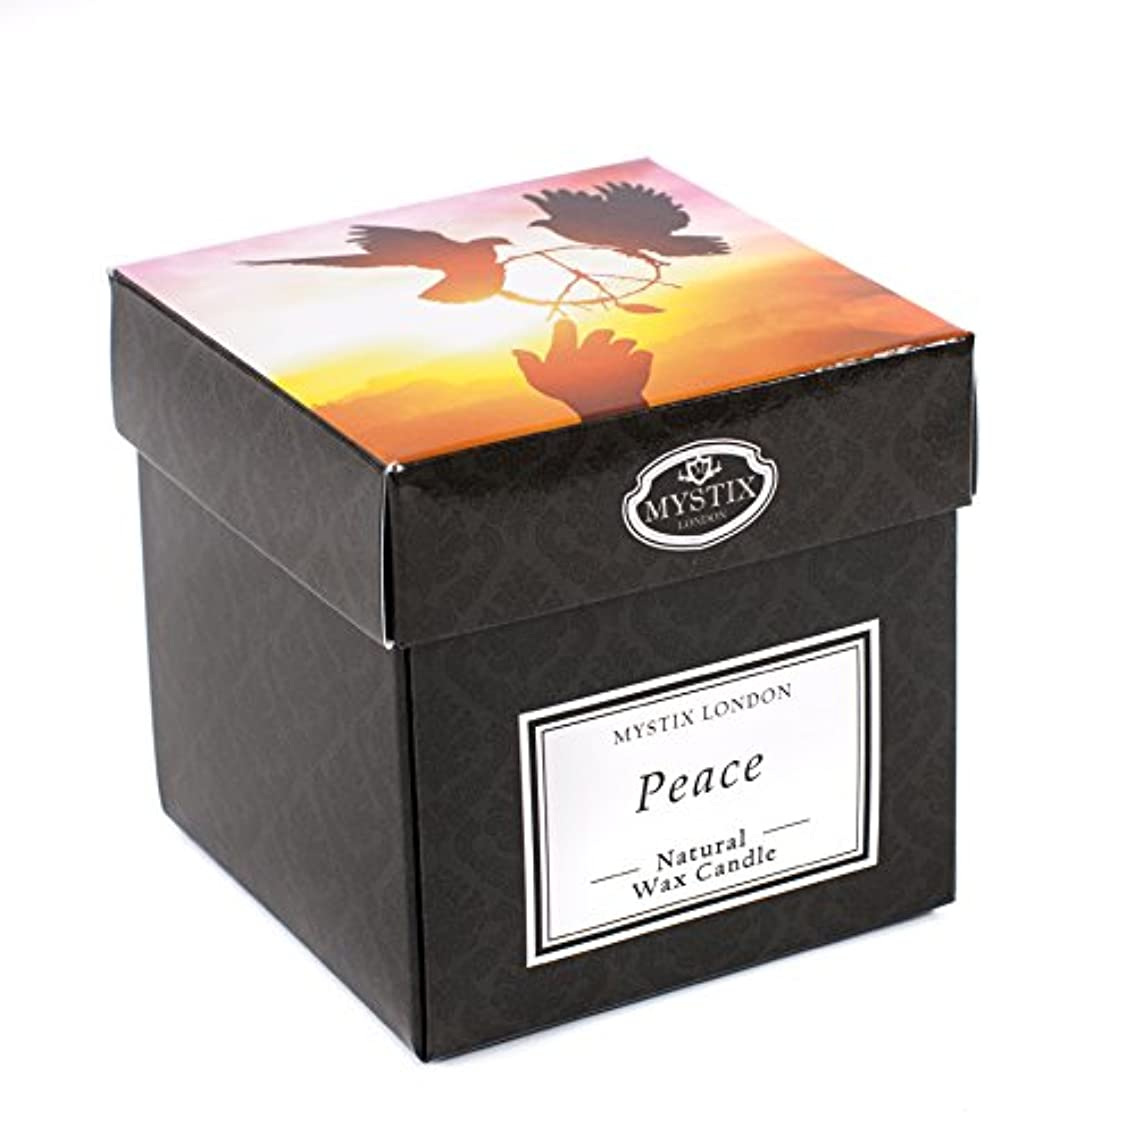 Mystix London | Peace Scented Candle - Large